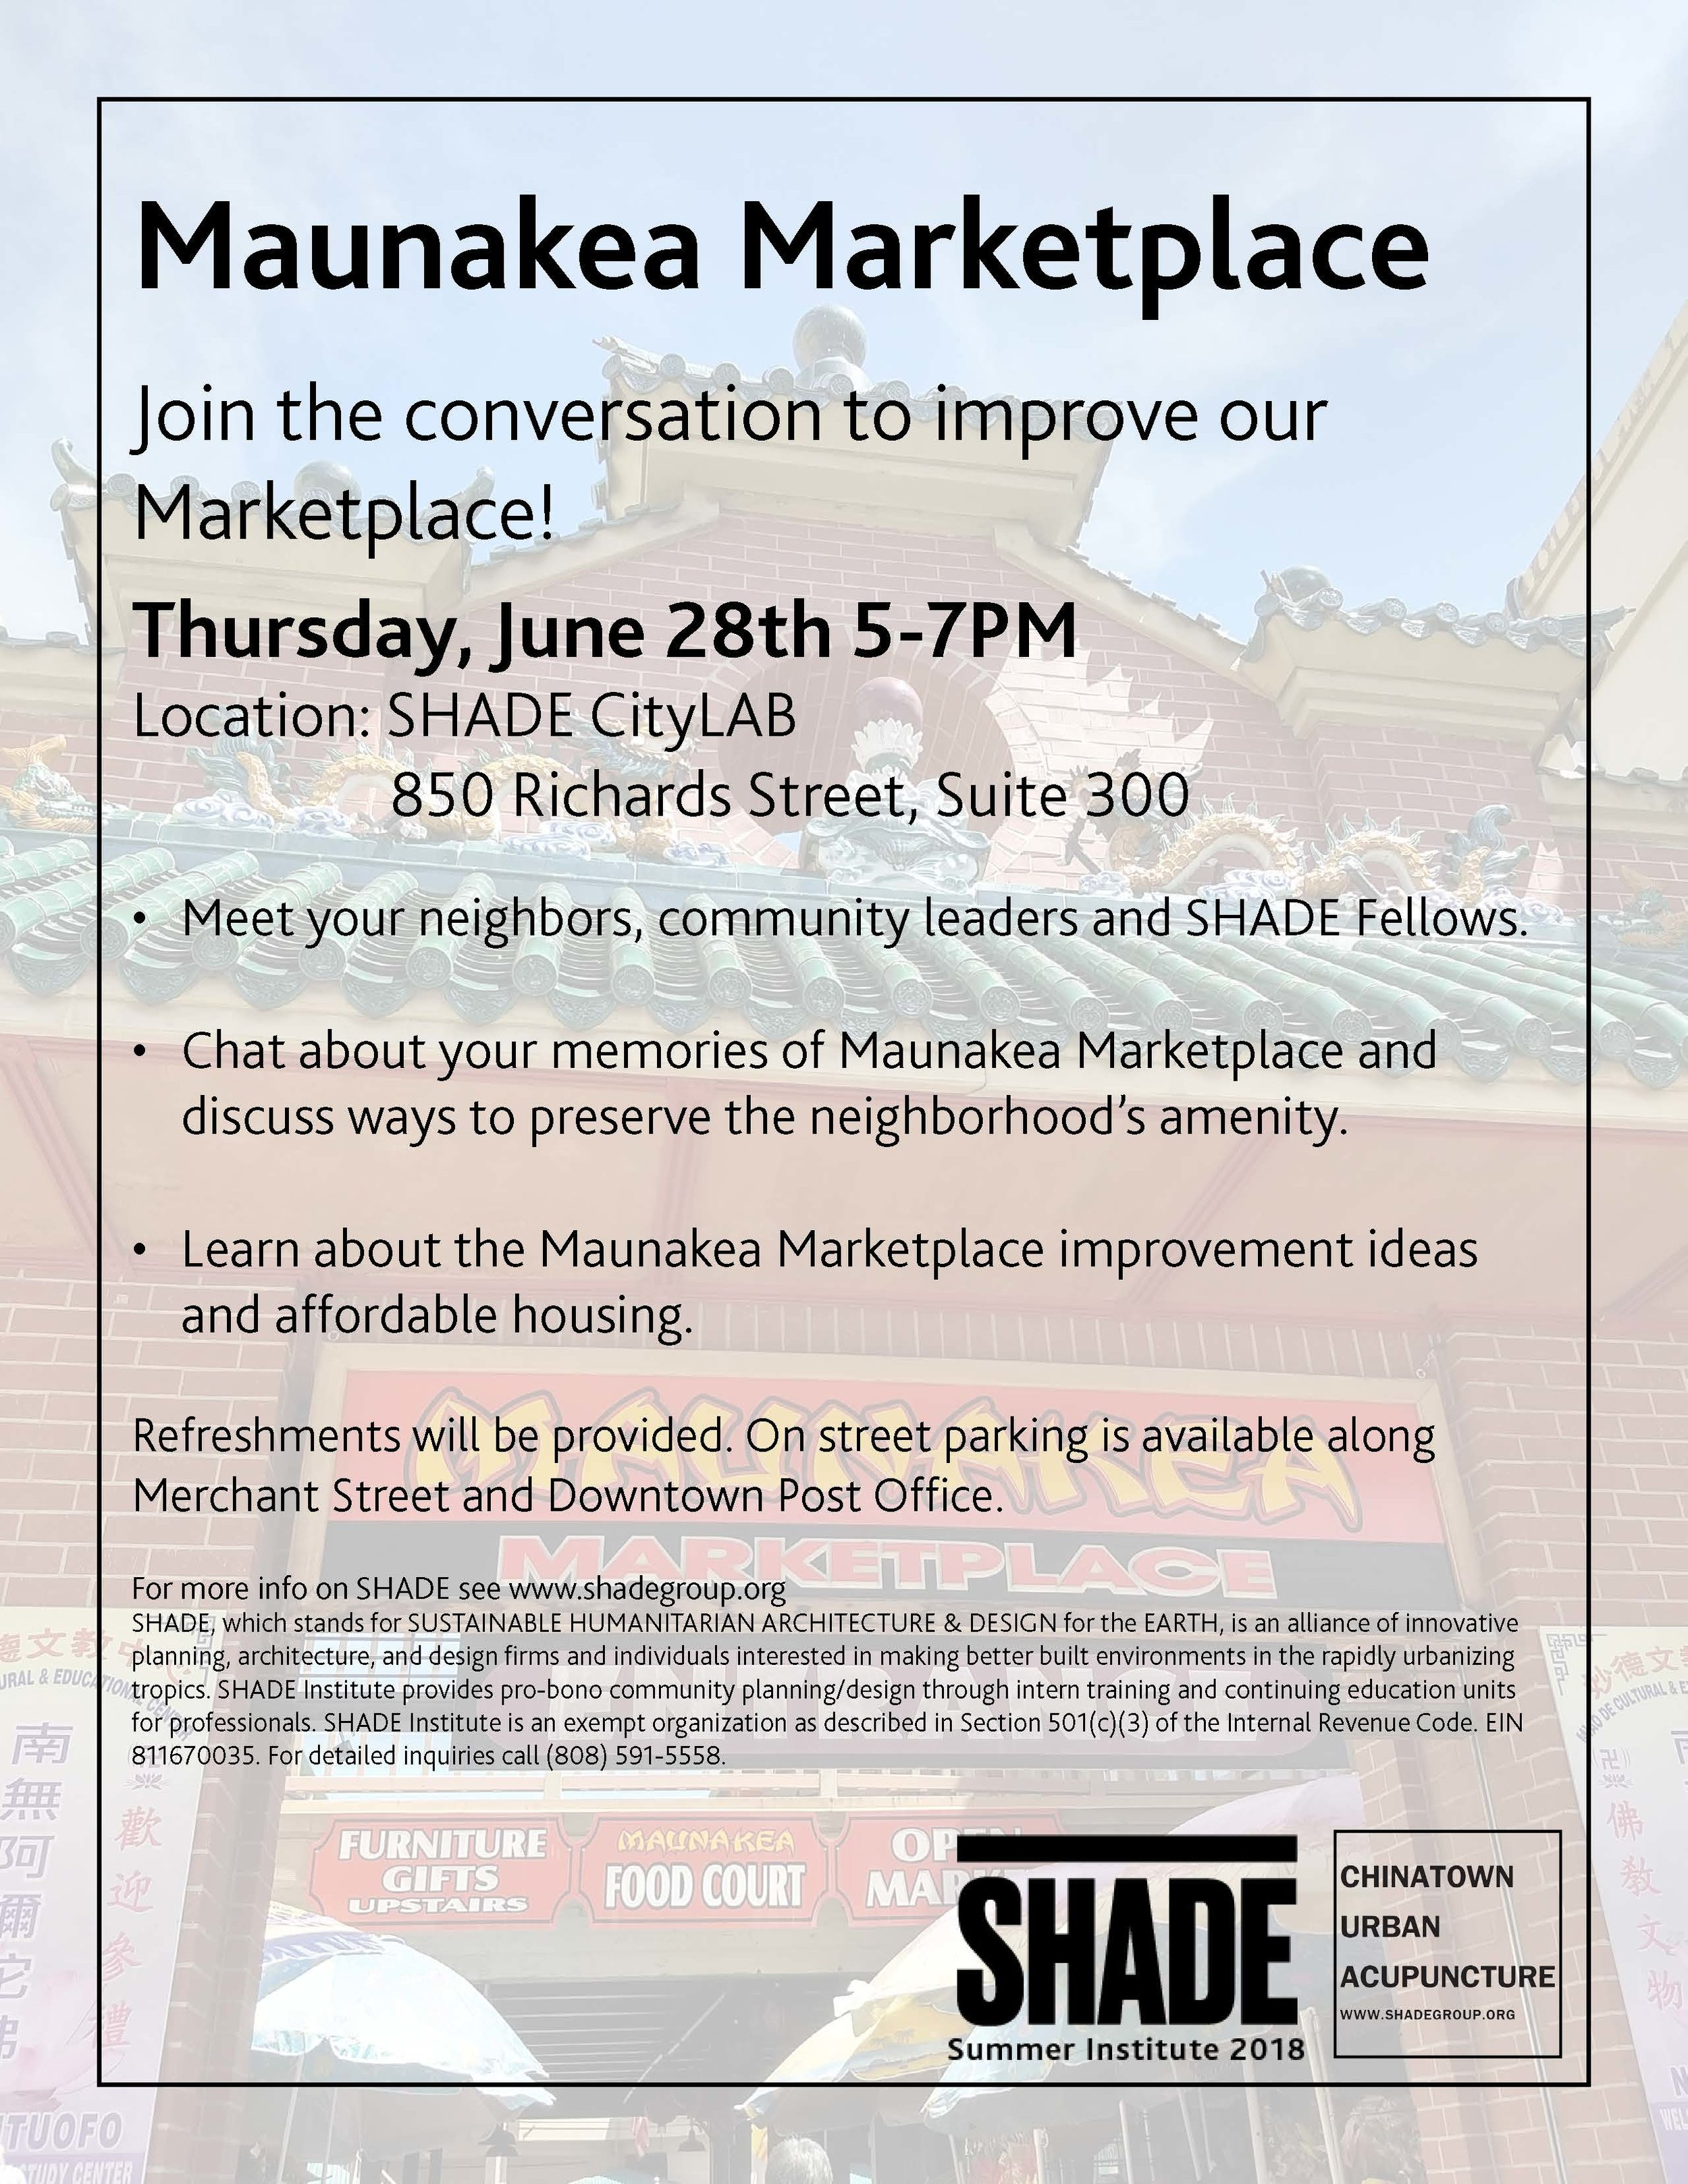 Maunakea Marketplace Flyer.jpg